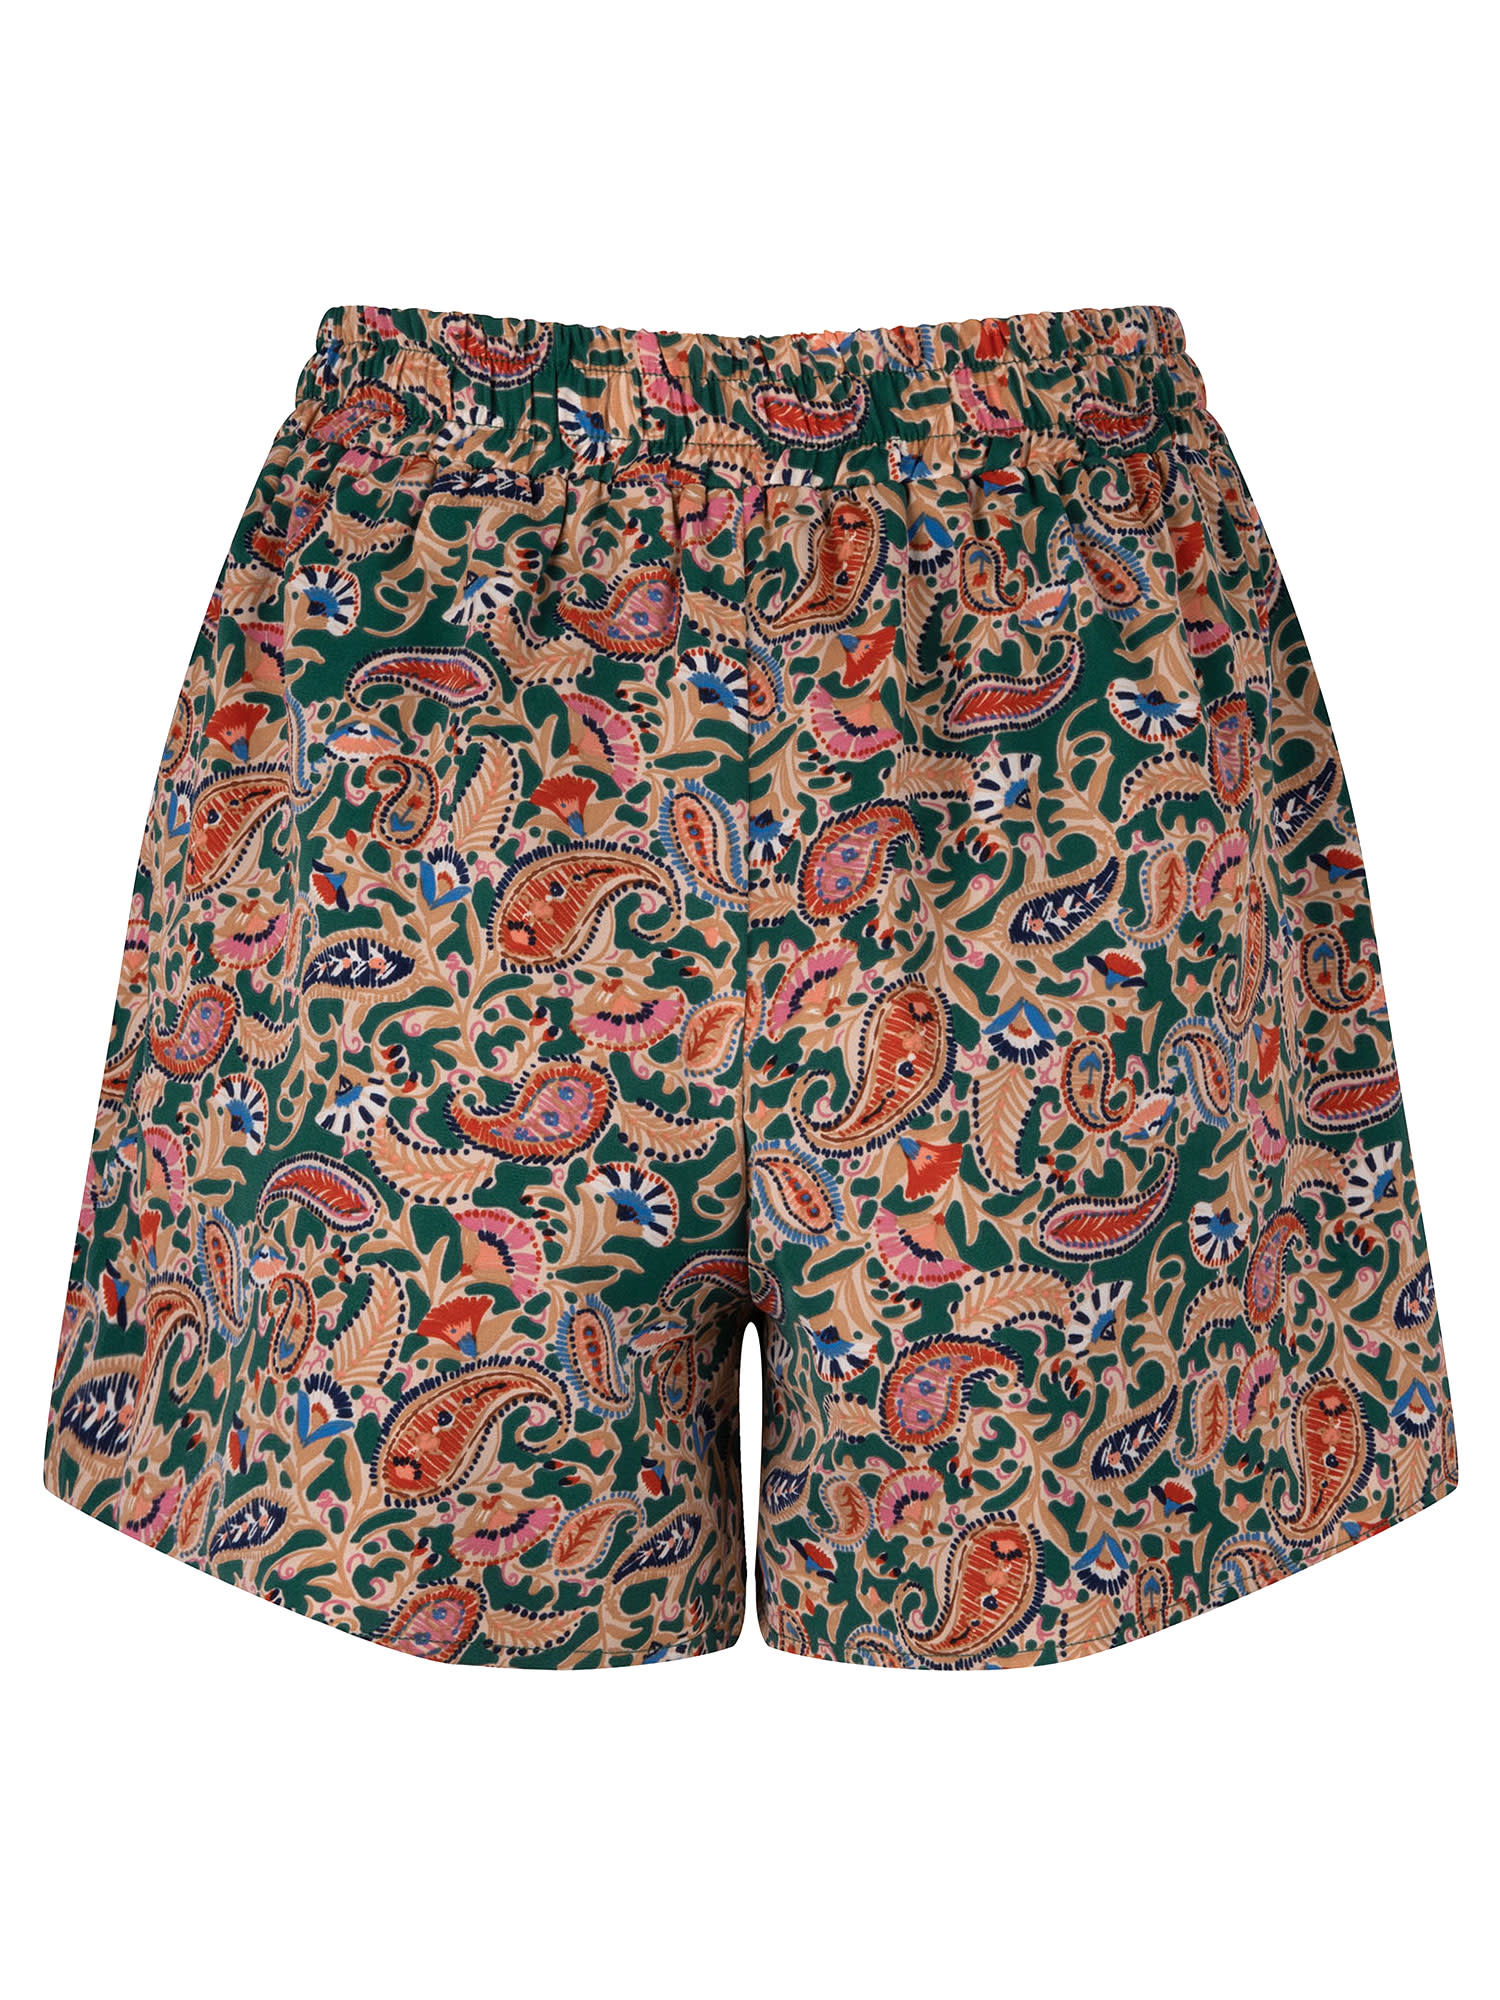 YDENCE YDENCE - Short layla groen paisley